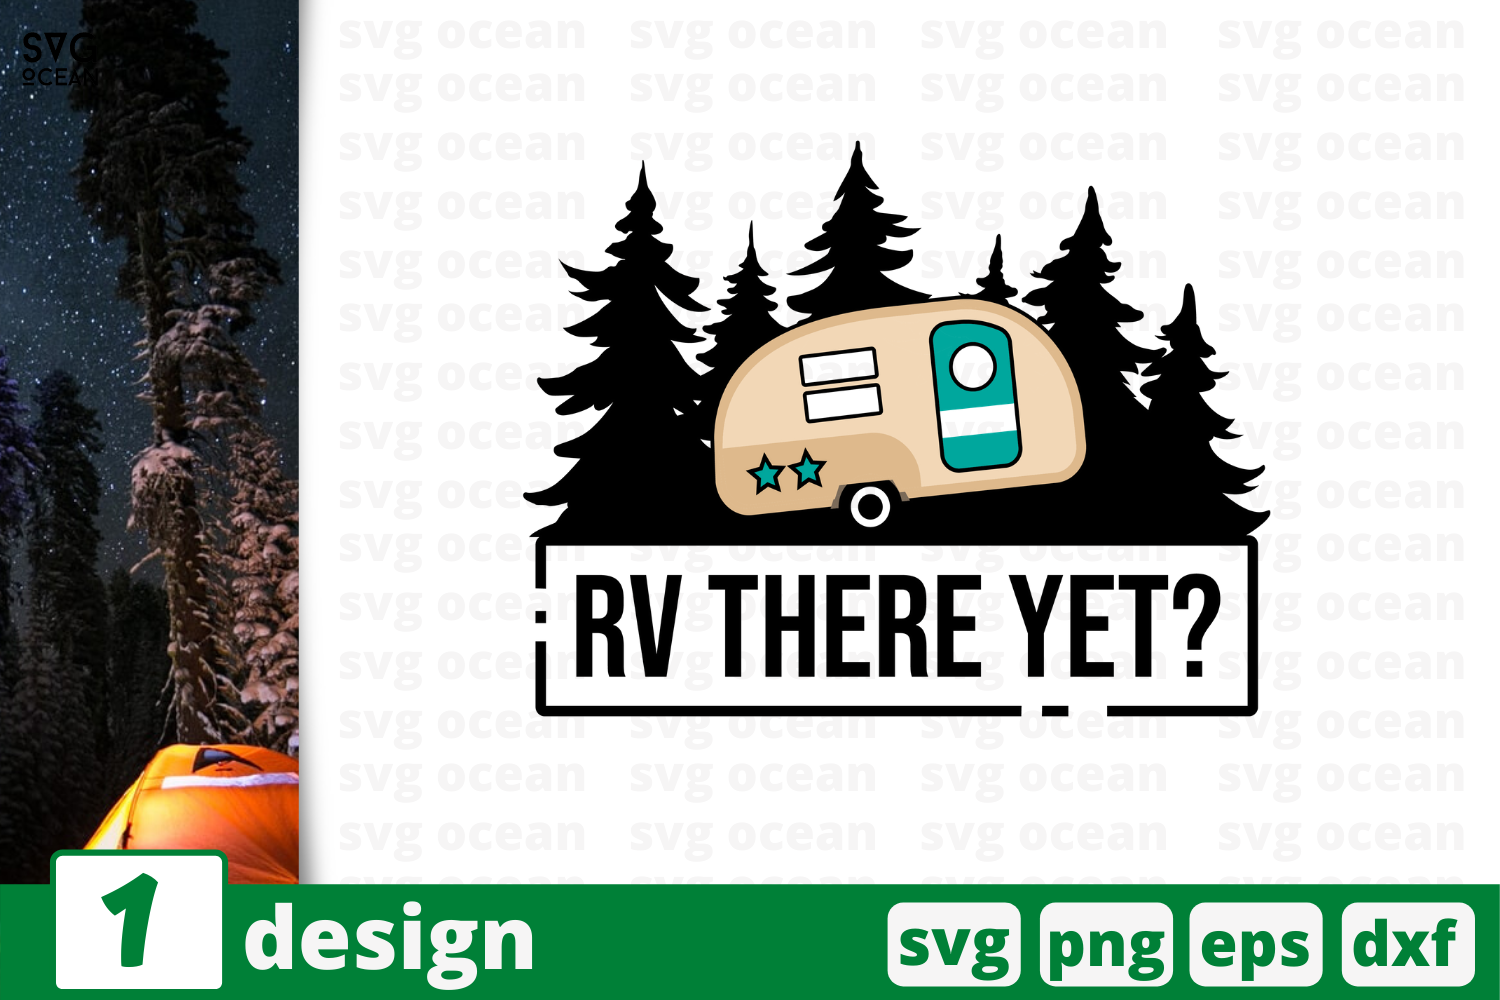 Download Free Rv There Yet Graphic By Svgocean Creative Fabrica for Cricut Explore, Silhouette and other cutting machines.